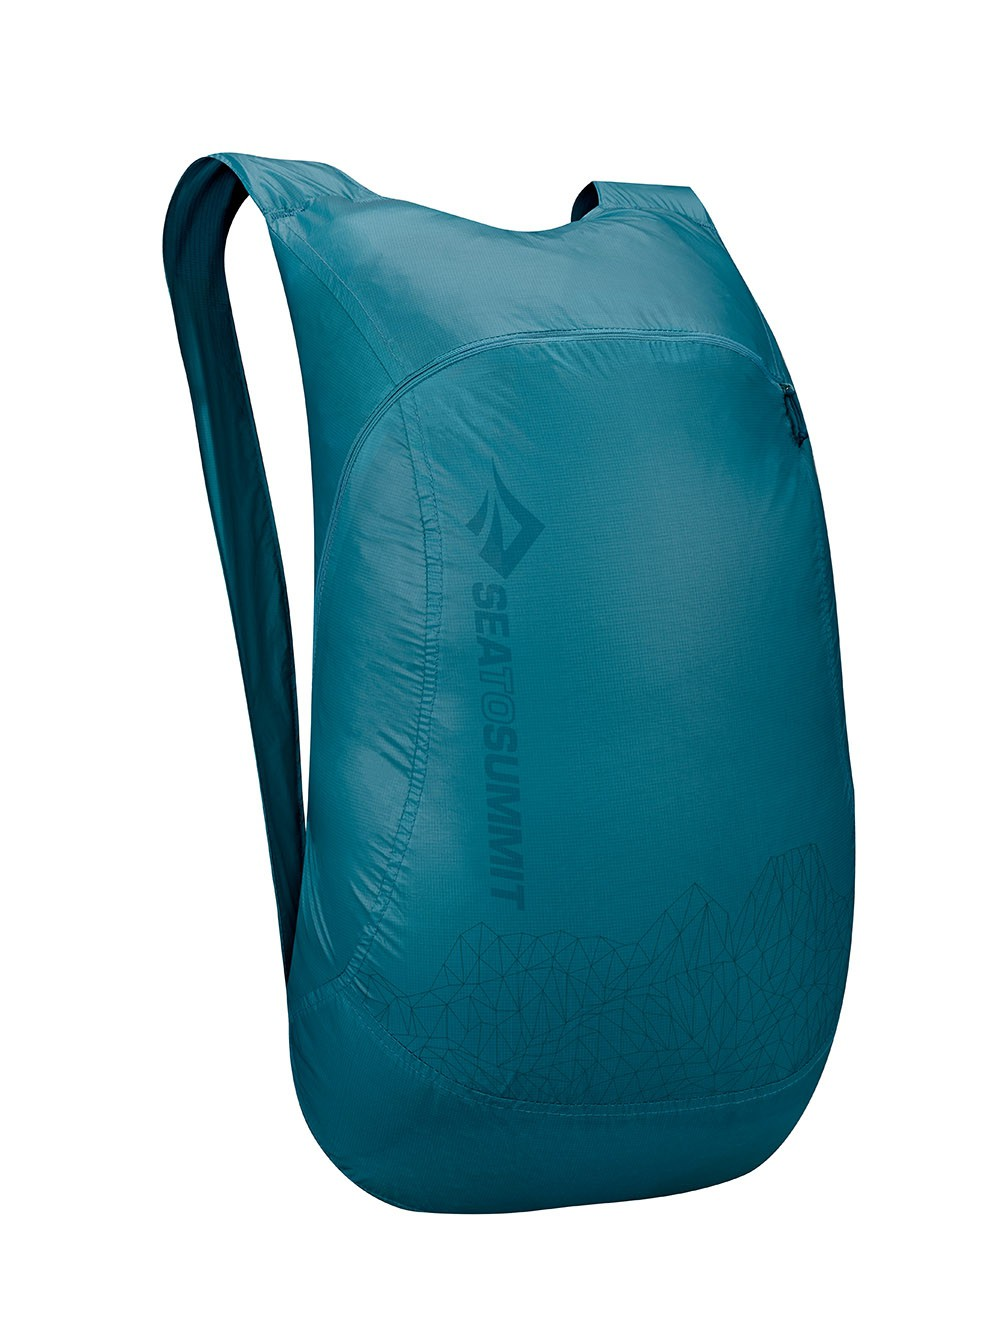 Sac à dos Sea To Summit Ultra Sil Nano DayPack Bleu Fonce